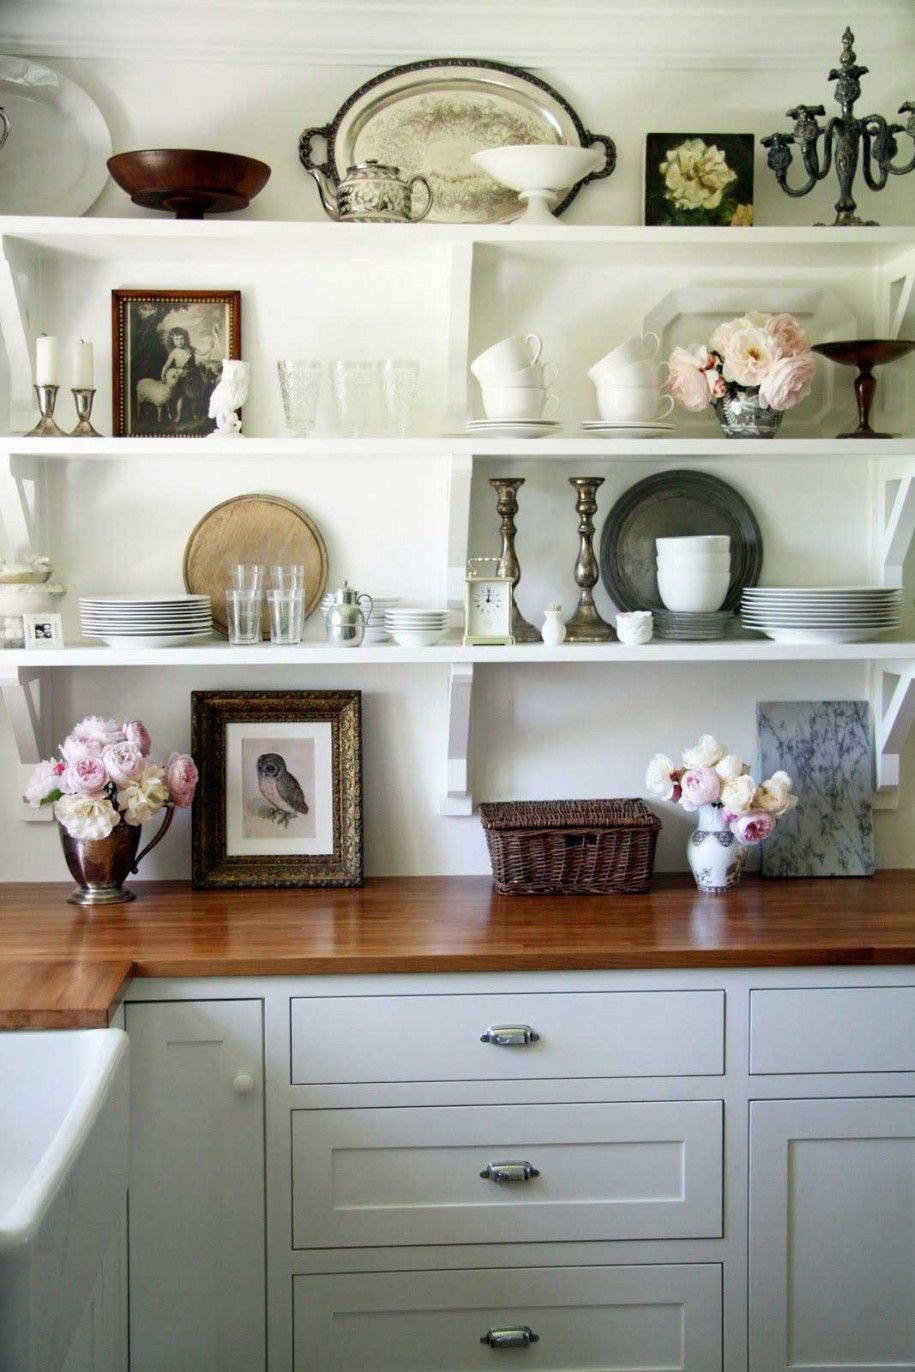 The Beautiful Accent For Kitchen Wall Decor : Vintage Kitchen Wall Decor